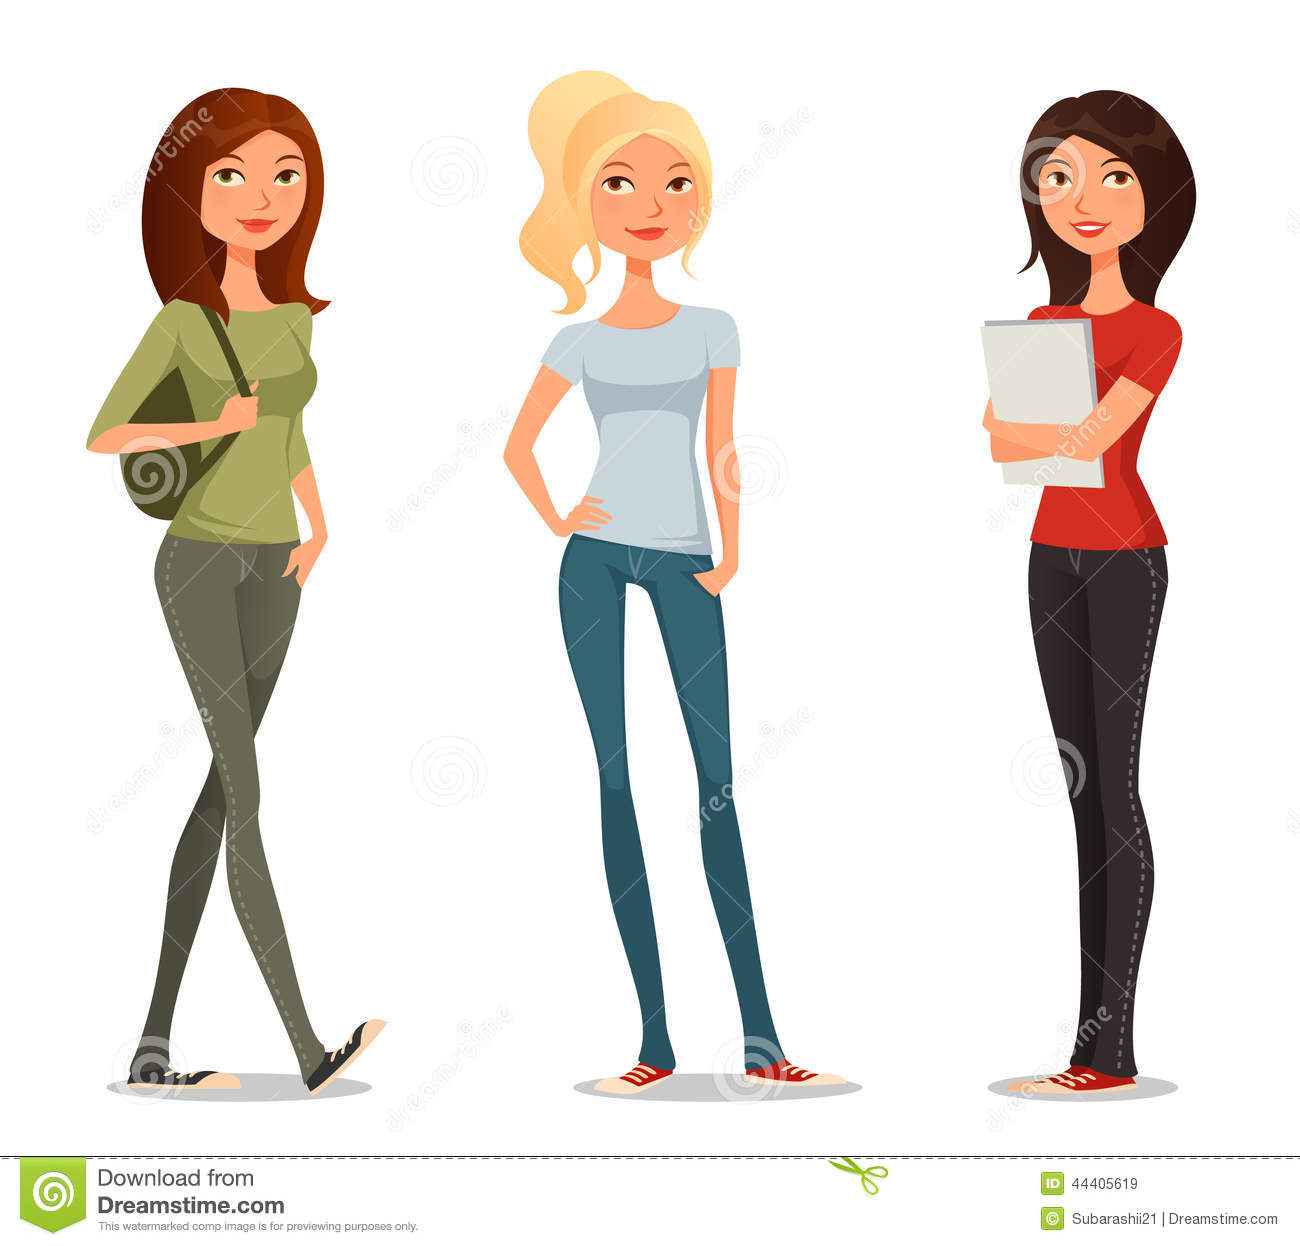 Cute Cartoon Illustration Of Teenage Girls Stock Vector   Image